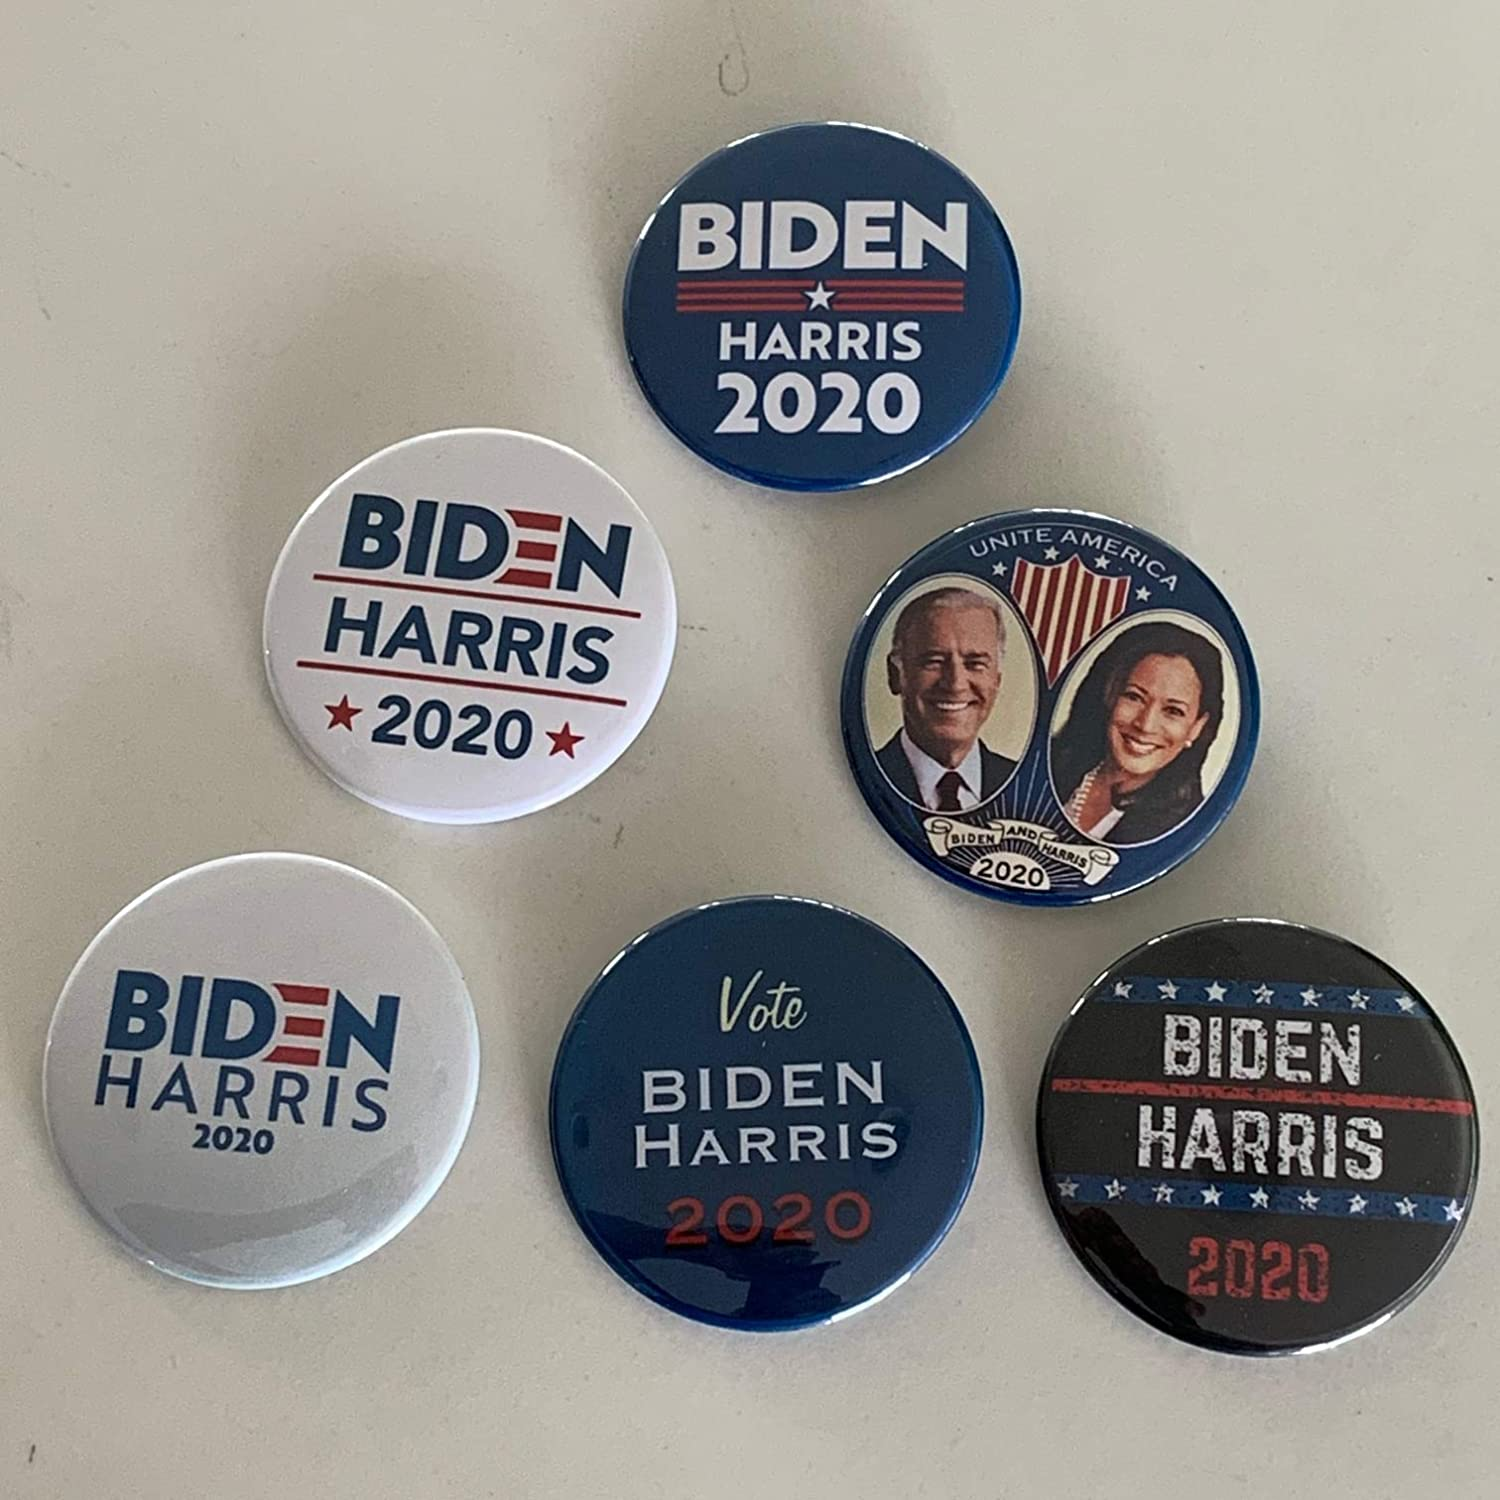 Amazon Com Biden Harris 2020 Set Of 6 Buttons From Presidentialelection Com Joe Biden Kamala Harris 2020 2 25 Inches Clothing